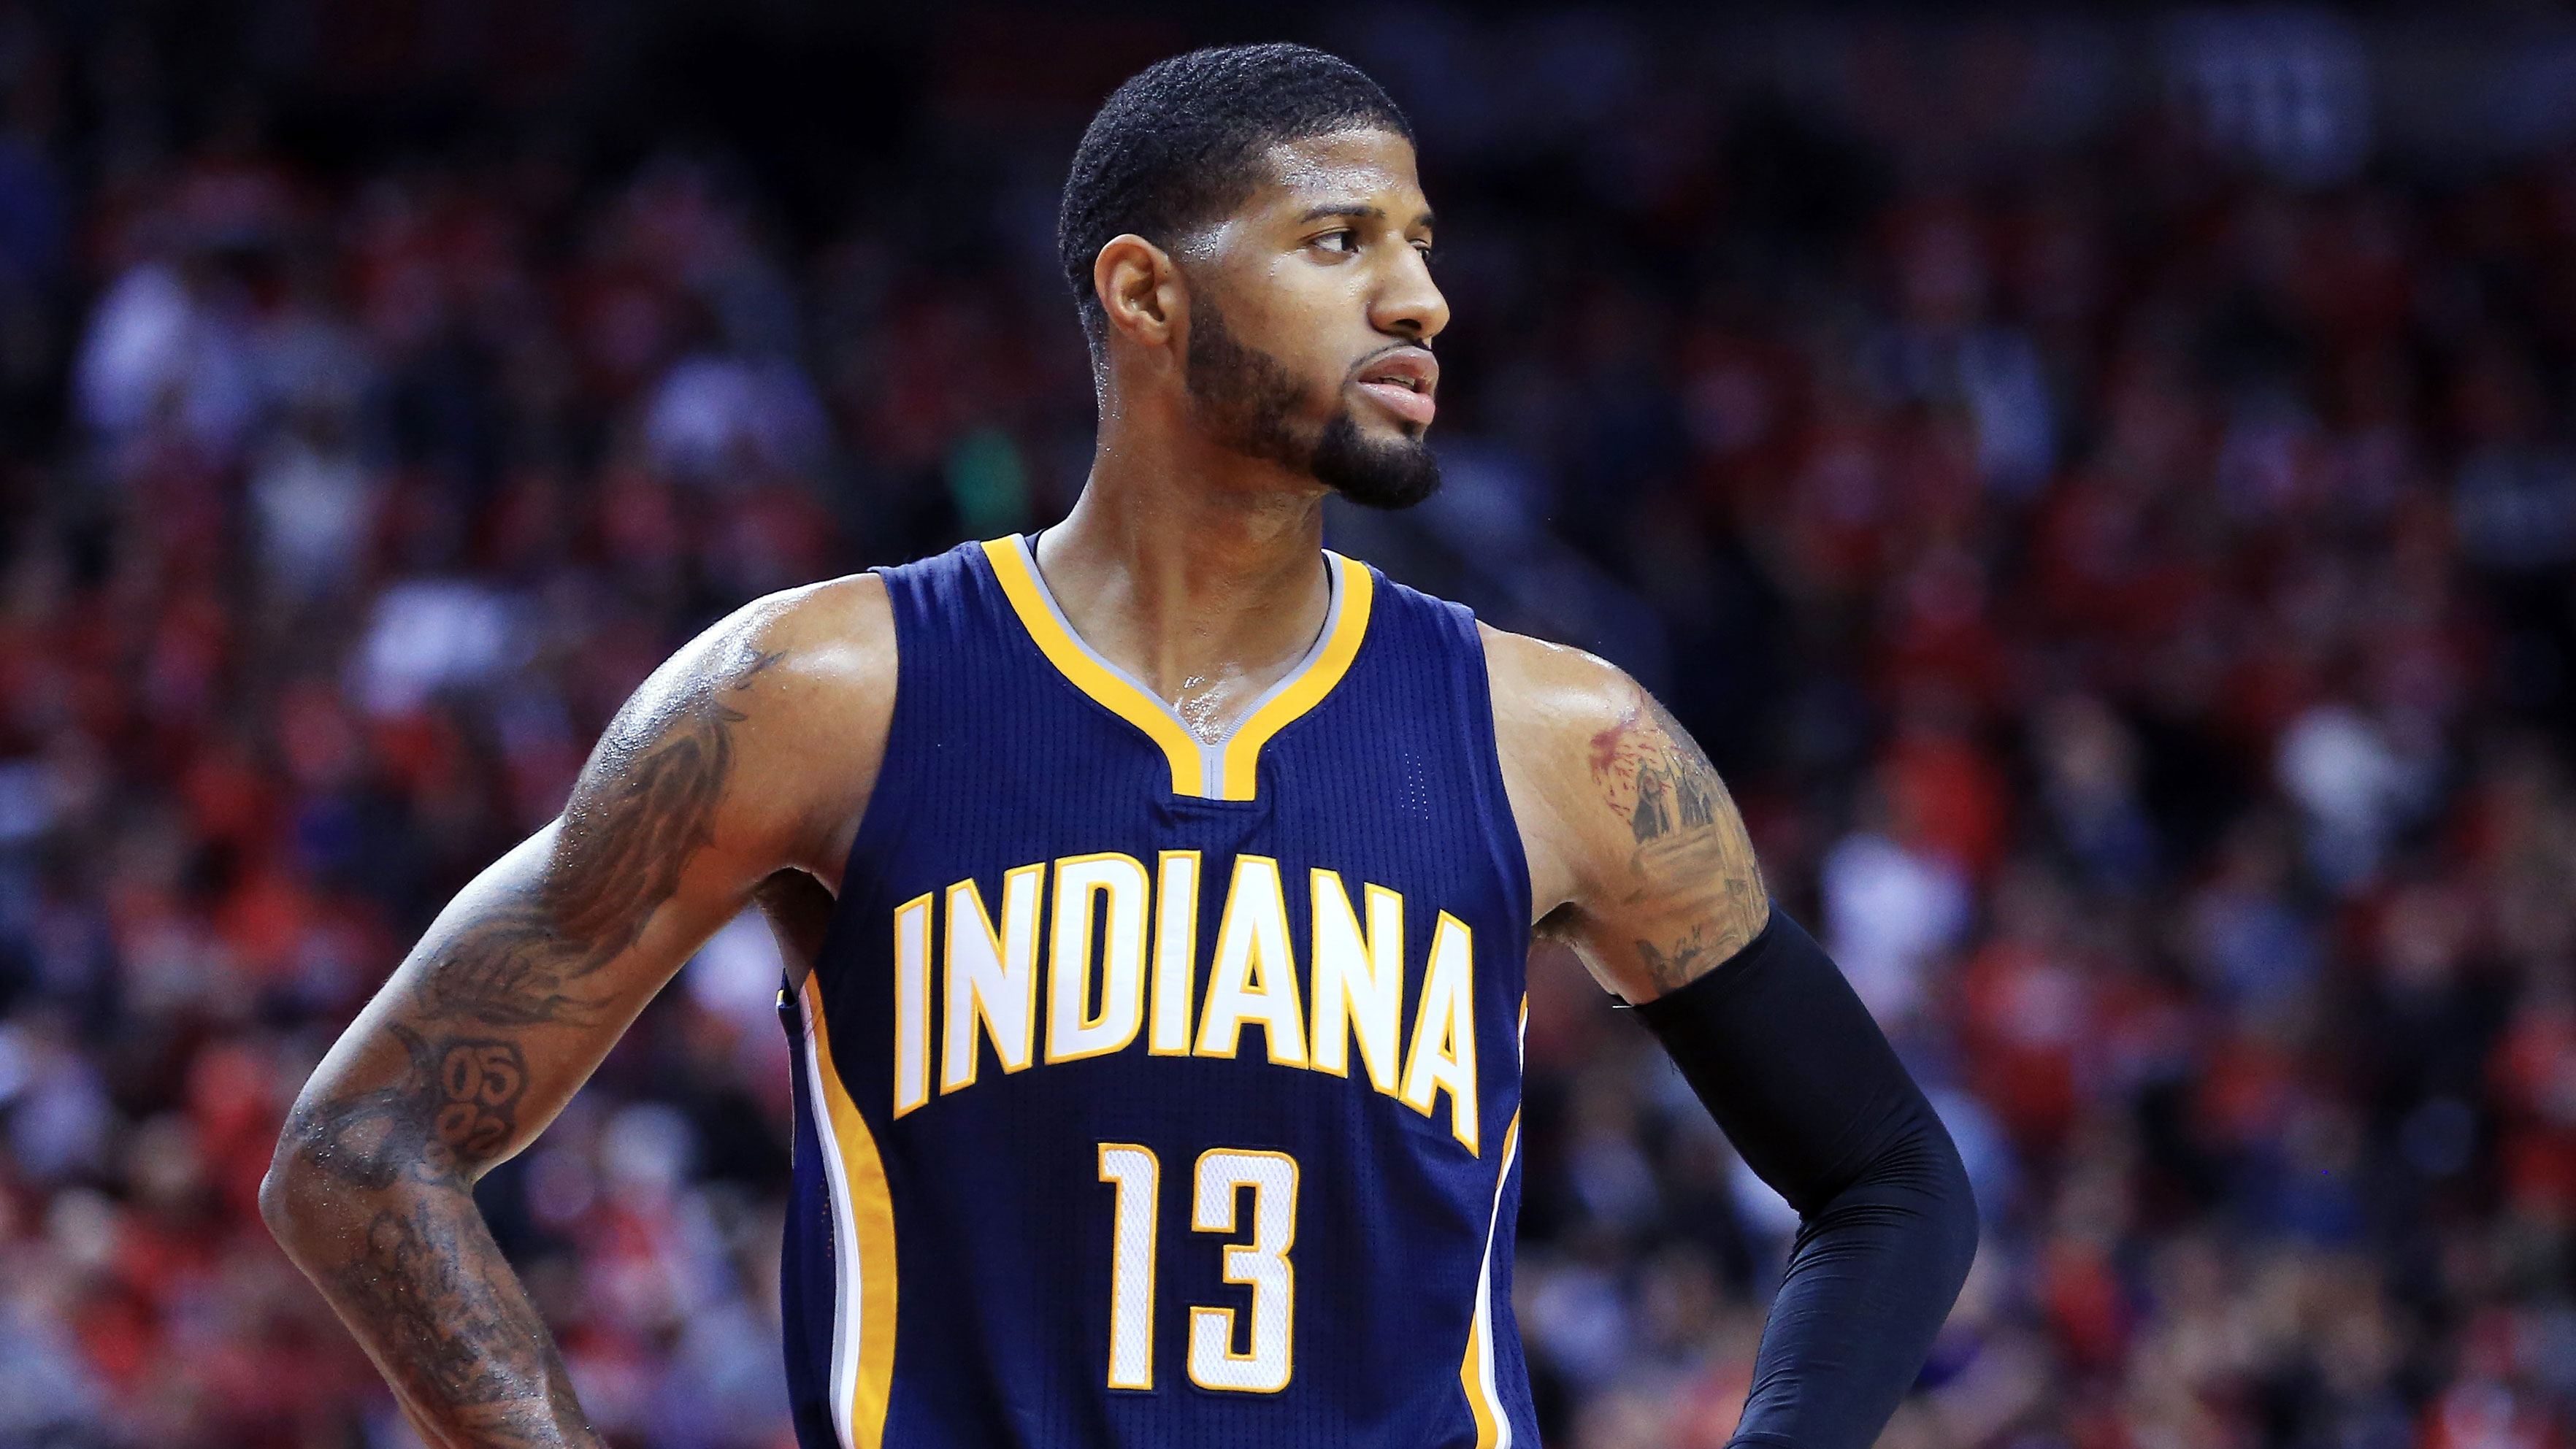 Paul George: Paul George: NBA 2K17 Cover Features Pacers Star